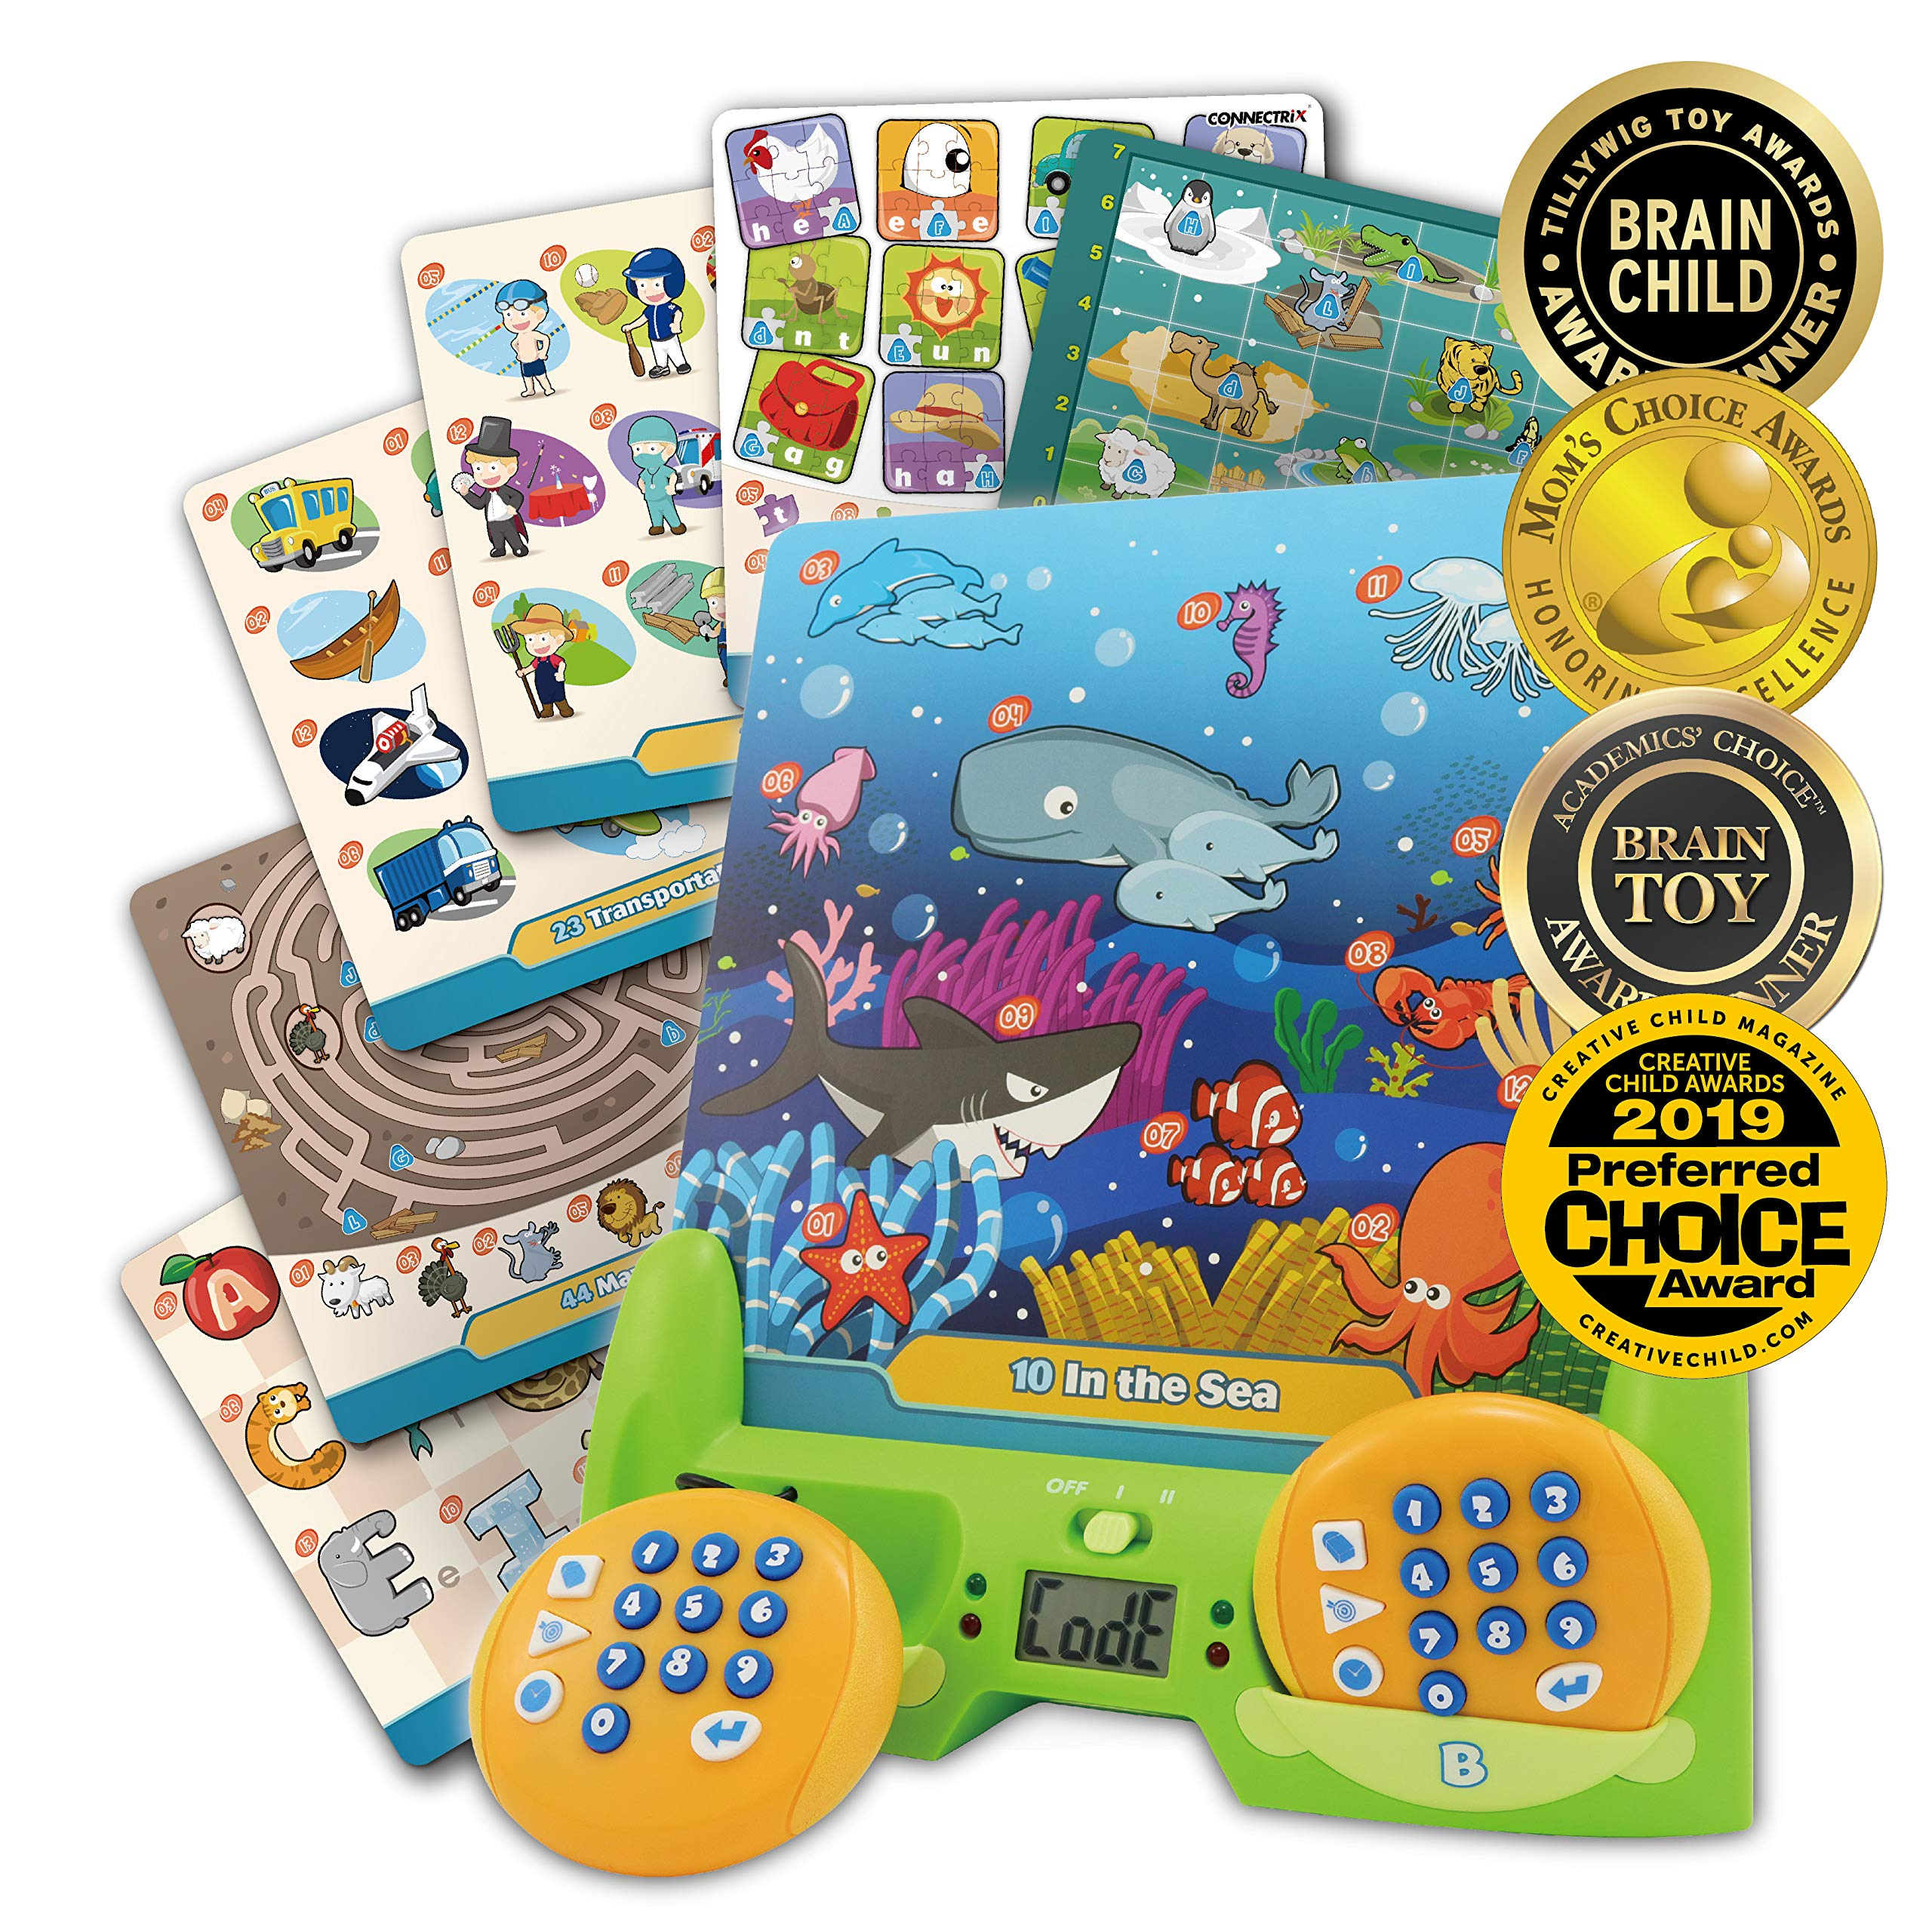 BEST LEARNING Connectrix Junior - Memory Matching Game for Kids - Original Interactive Educational Match Cards Toddler Games for 3-8 Year Olds - Classic 2-Player Concentration Card Toys for Toddlers by BEST LEARNING